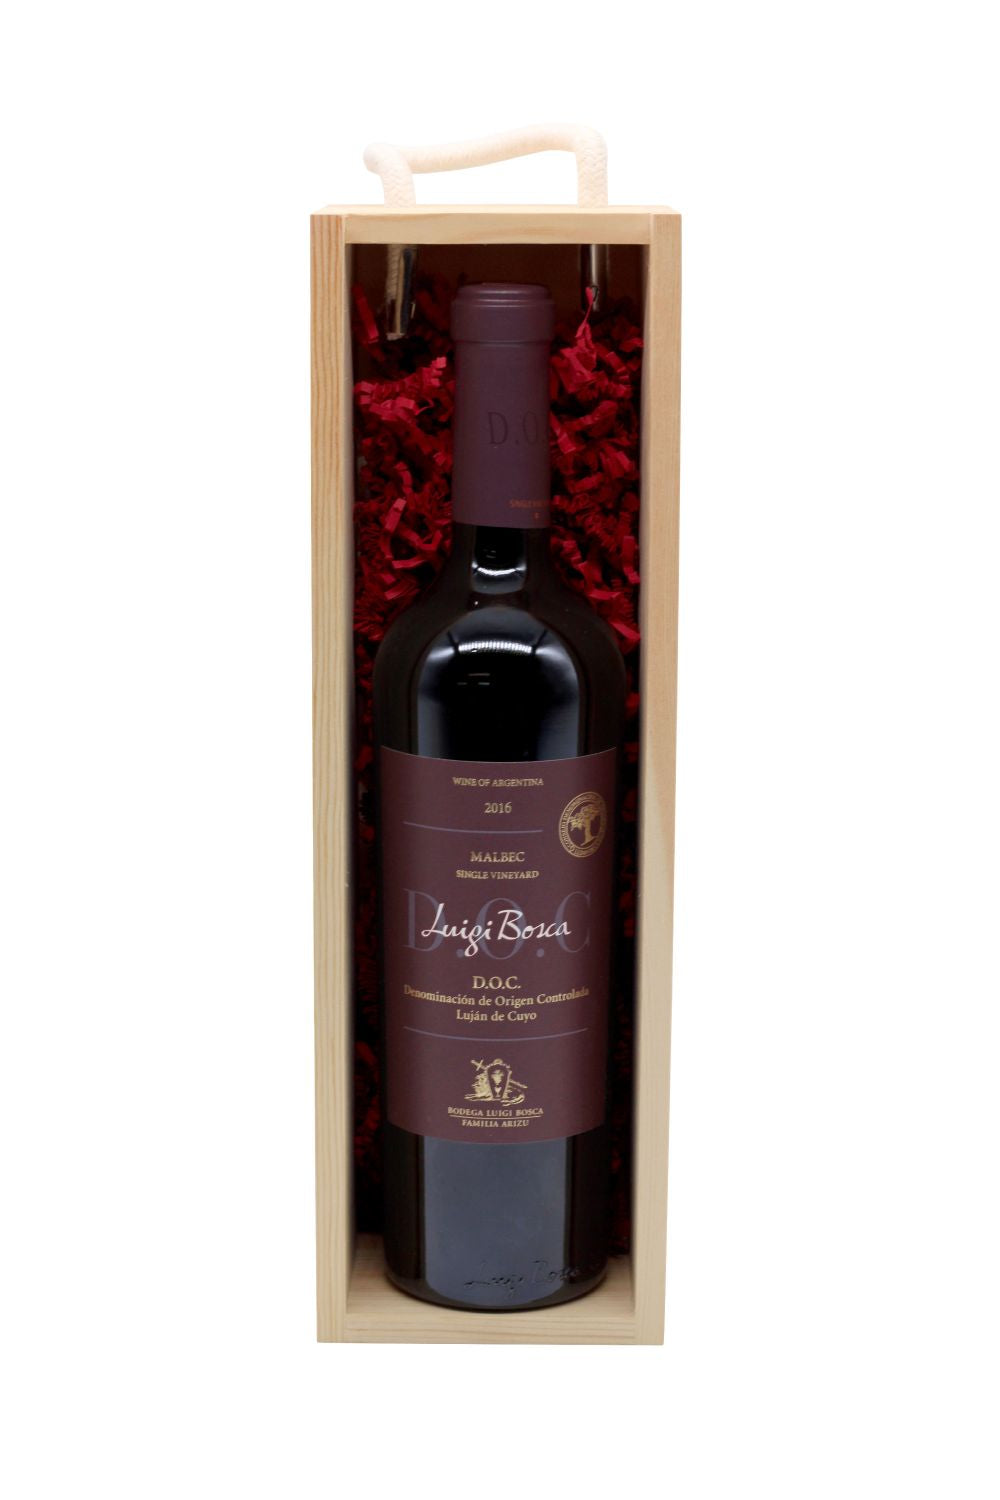 Single Vineyard Malbec - Wine Gift